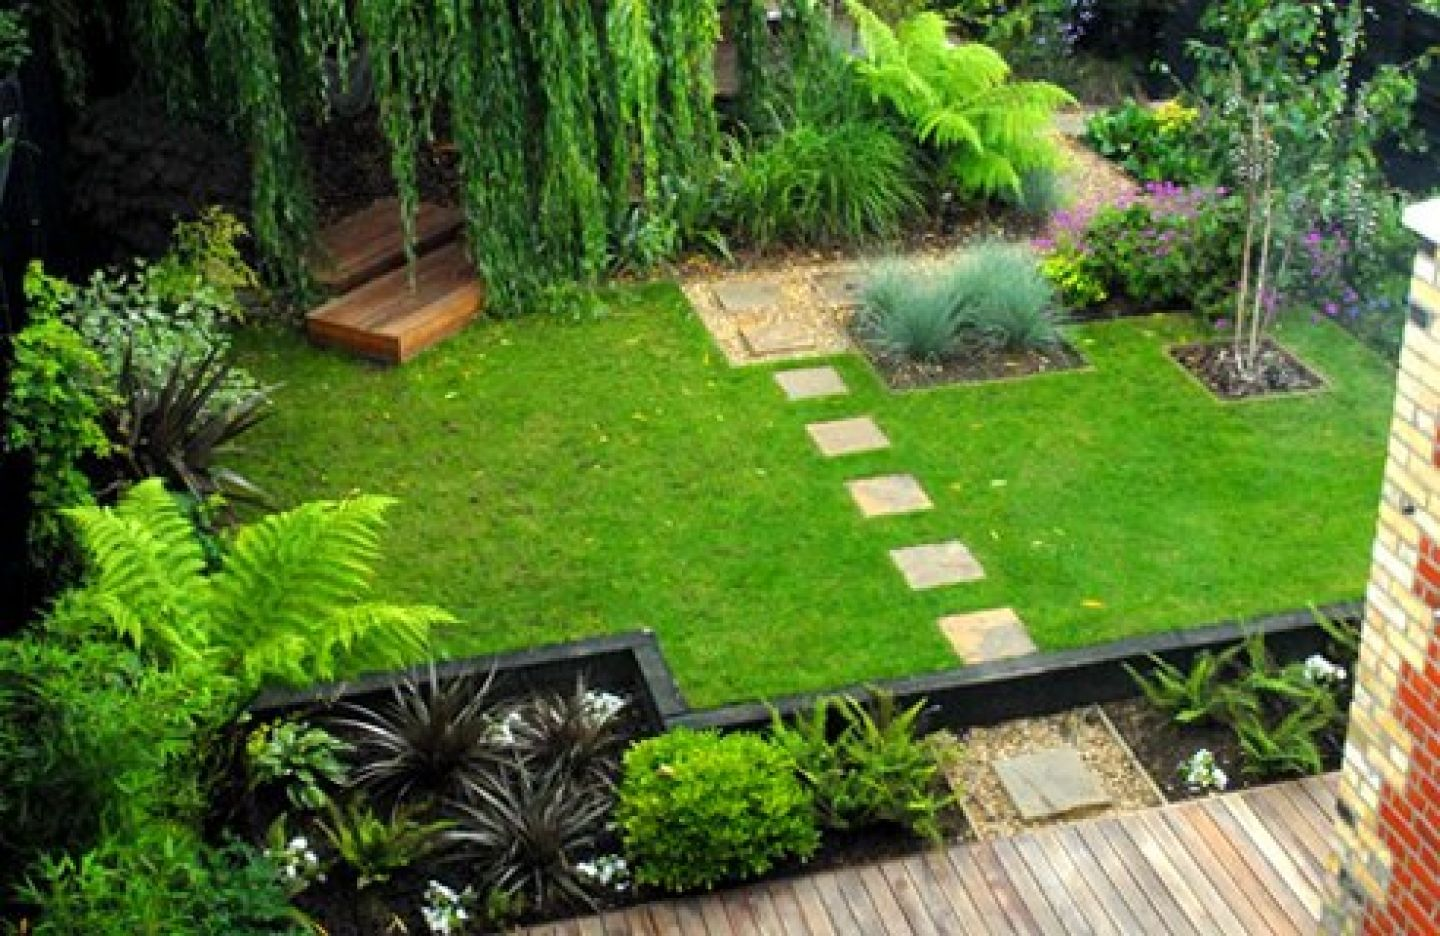 17 best images about garden design inspiration on pinterest gardens garden ideas and pathways